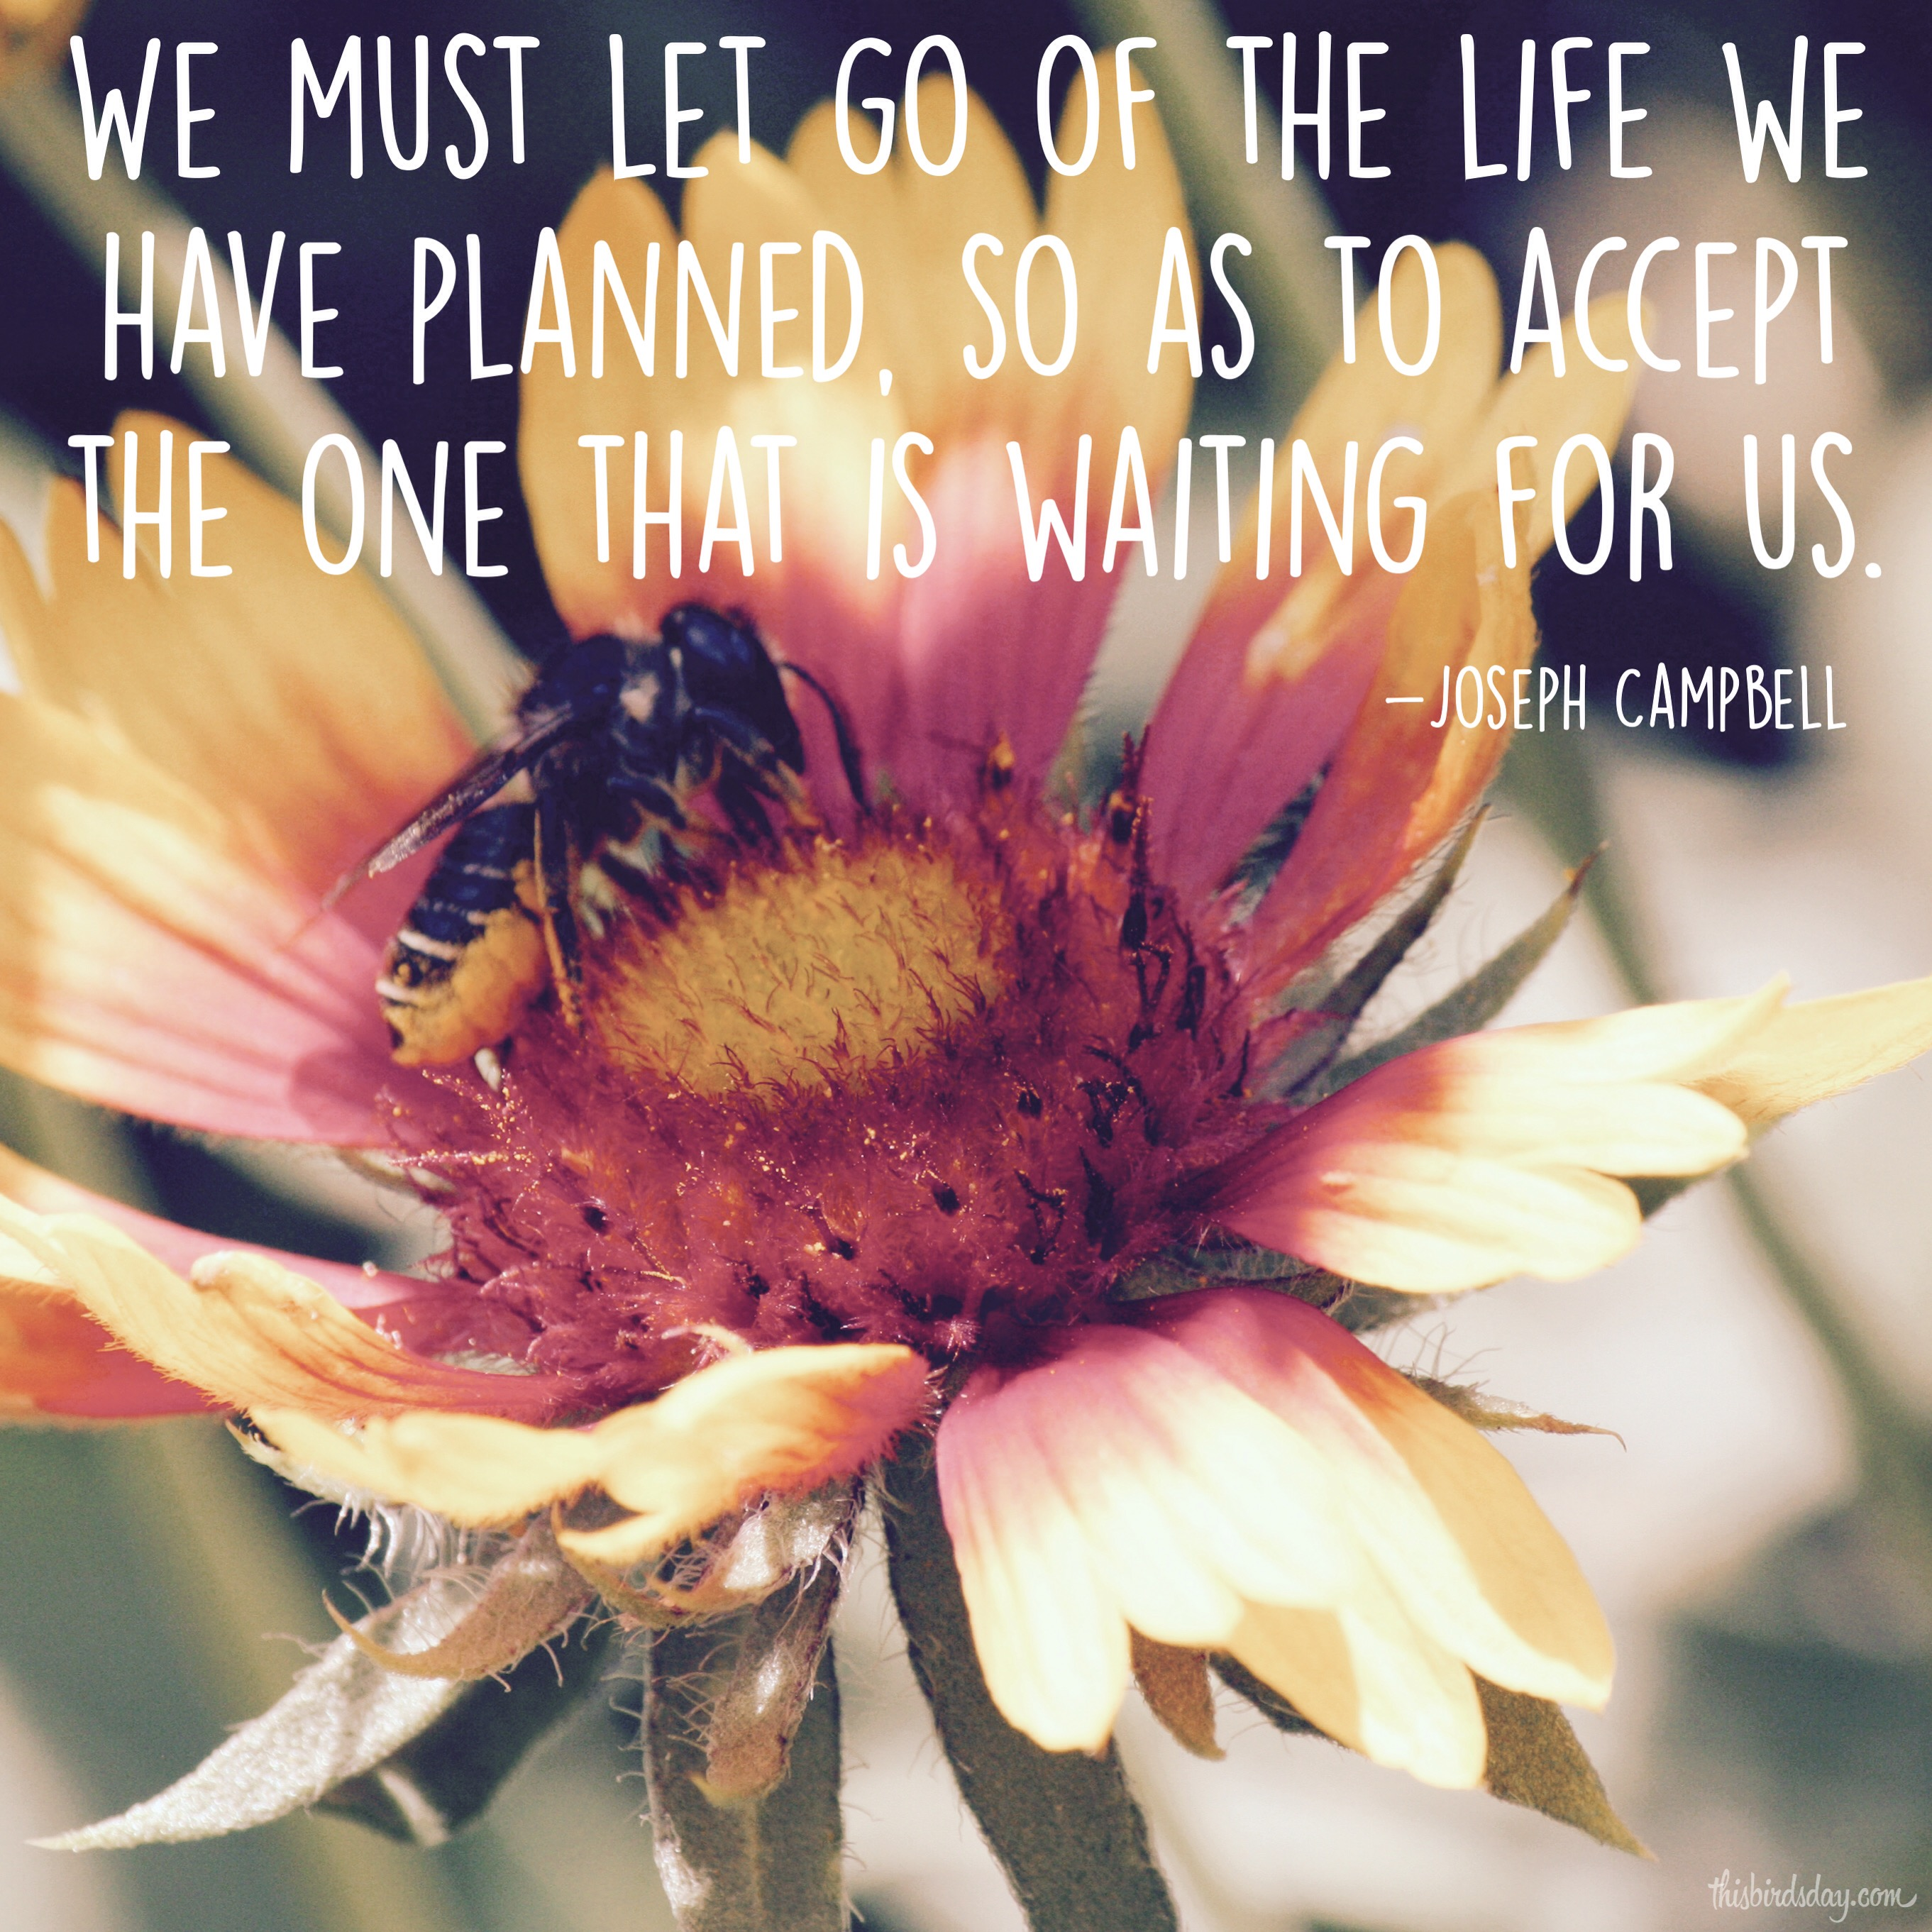 """""""We must let go of the life we have planned, so as to accept the one that is waiting for us."""" Joseph Campbell Photo copyright Sheri Landry (thisbirdsday.com)"""